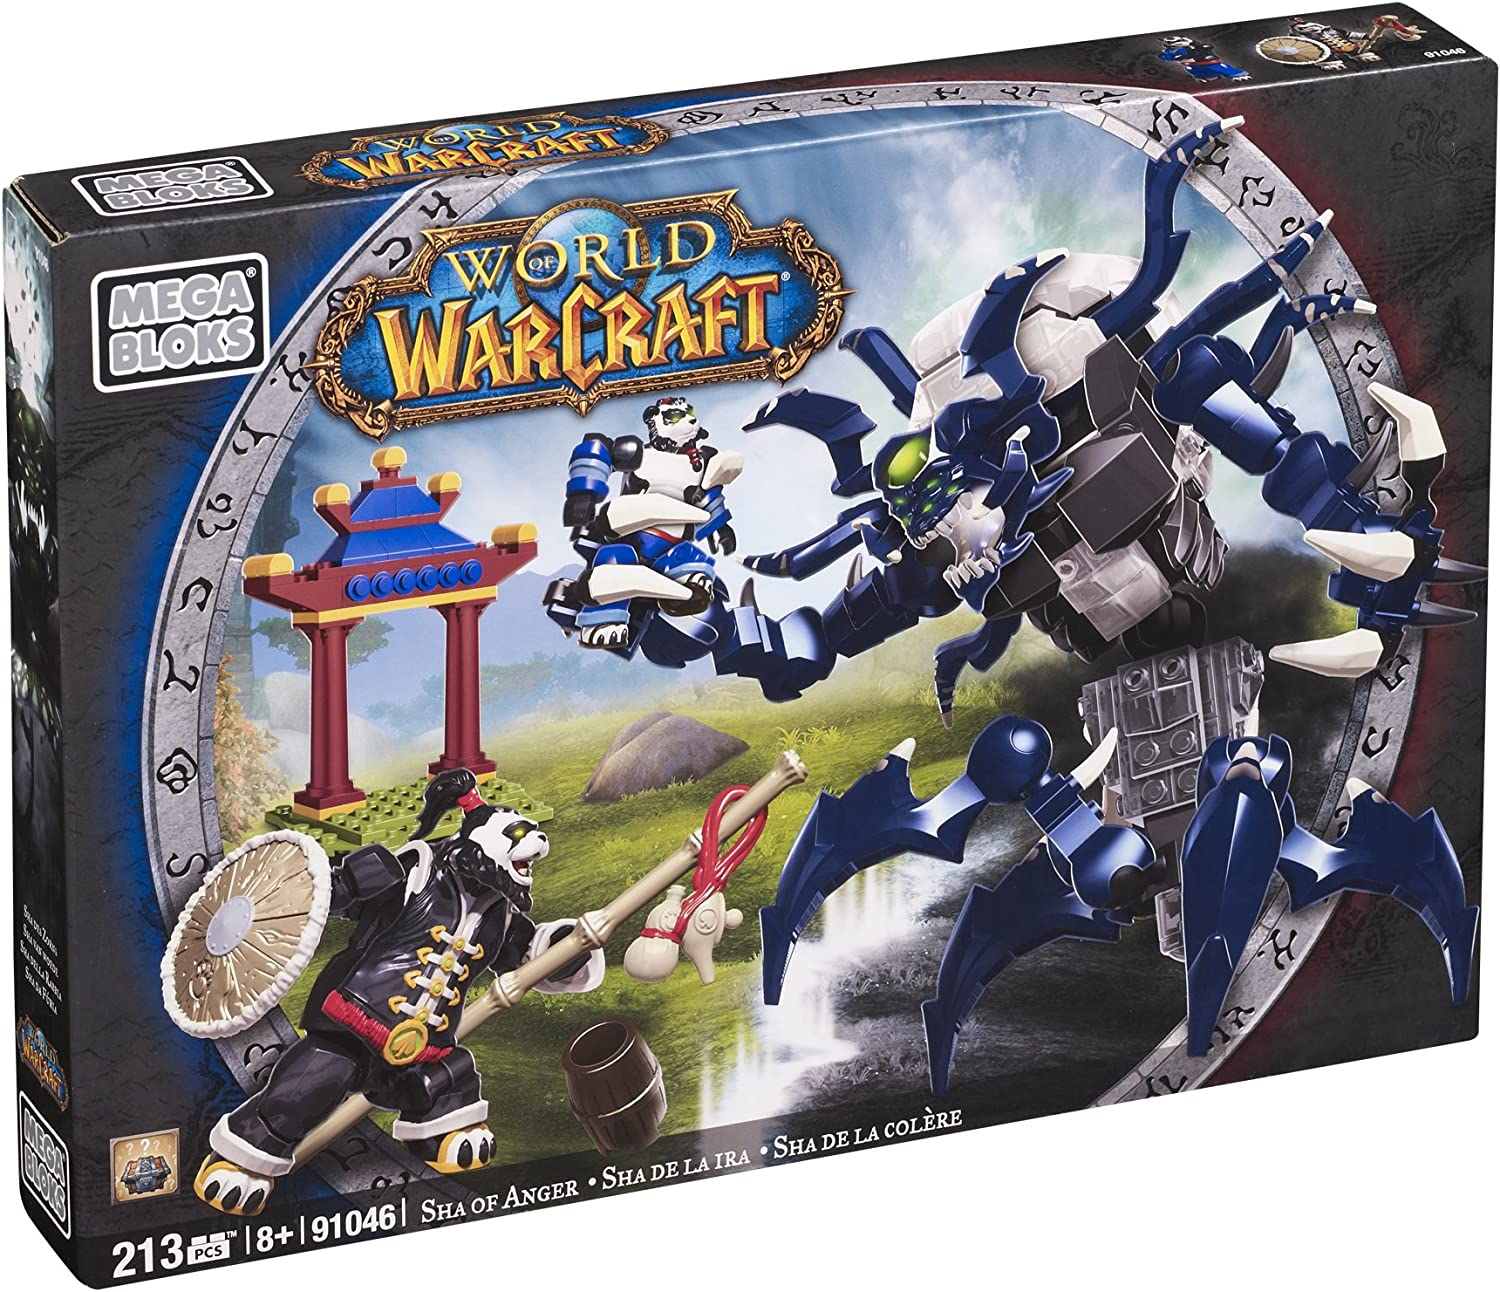 Mega Bloks 91046 World of Warcraft Panderia Sha: Amazon.es: Juguetes y juegos